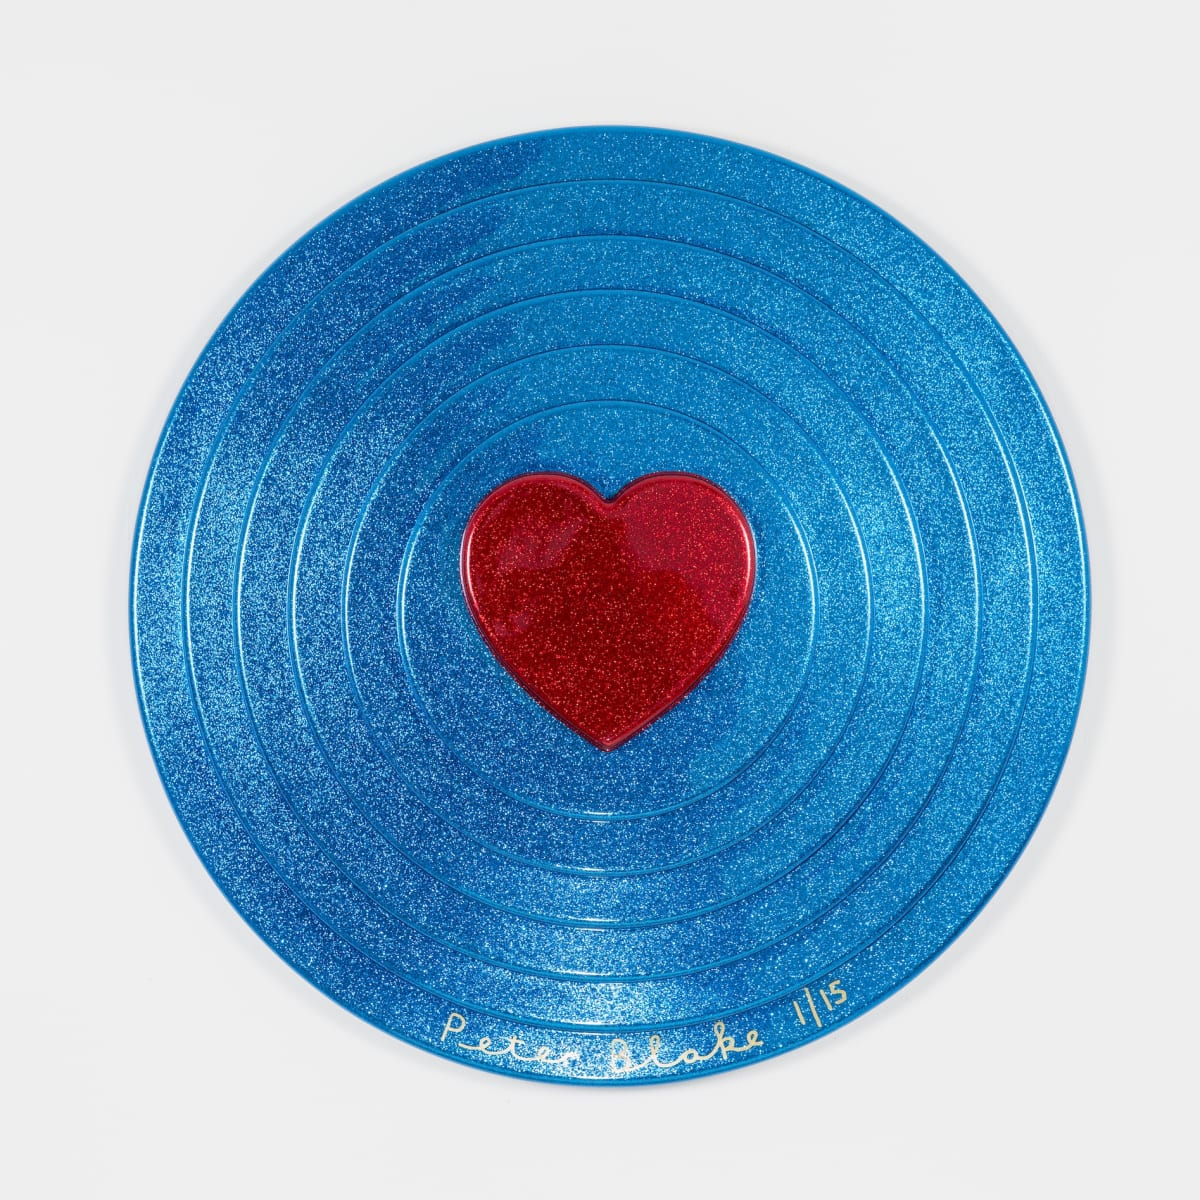 Peter Blake Red heart on blue Target (metal flake) , 2017 Vacuum formed plastic, paint 69 x 69 x 10 cm Edition of 15 Signed and numbered